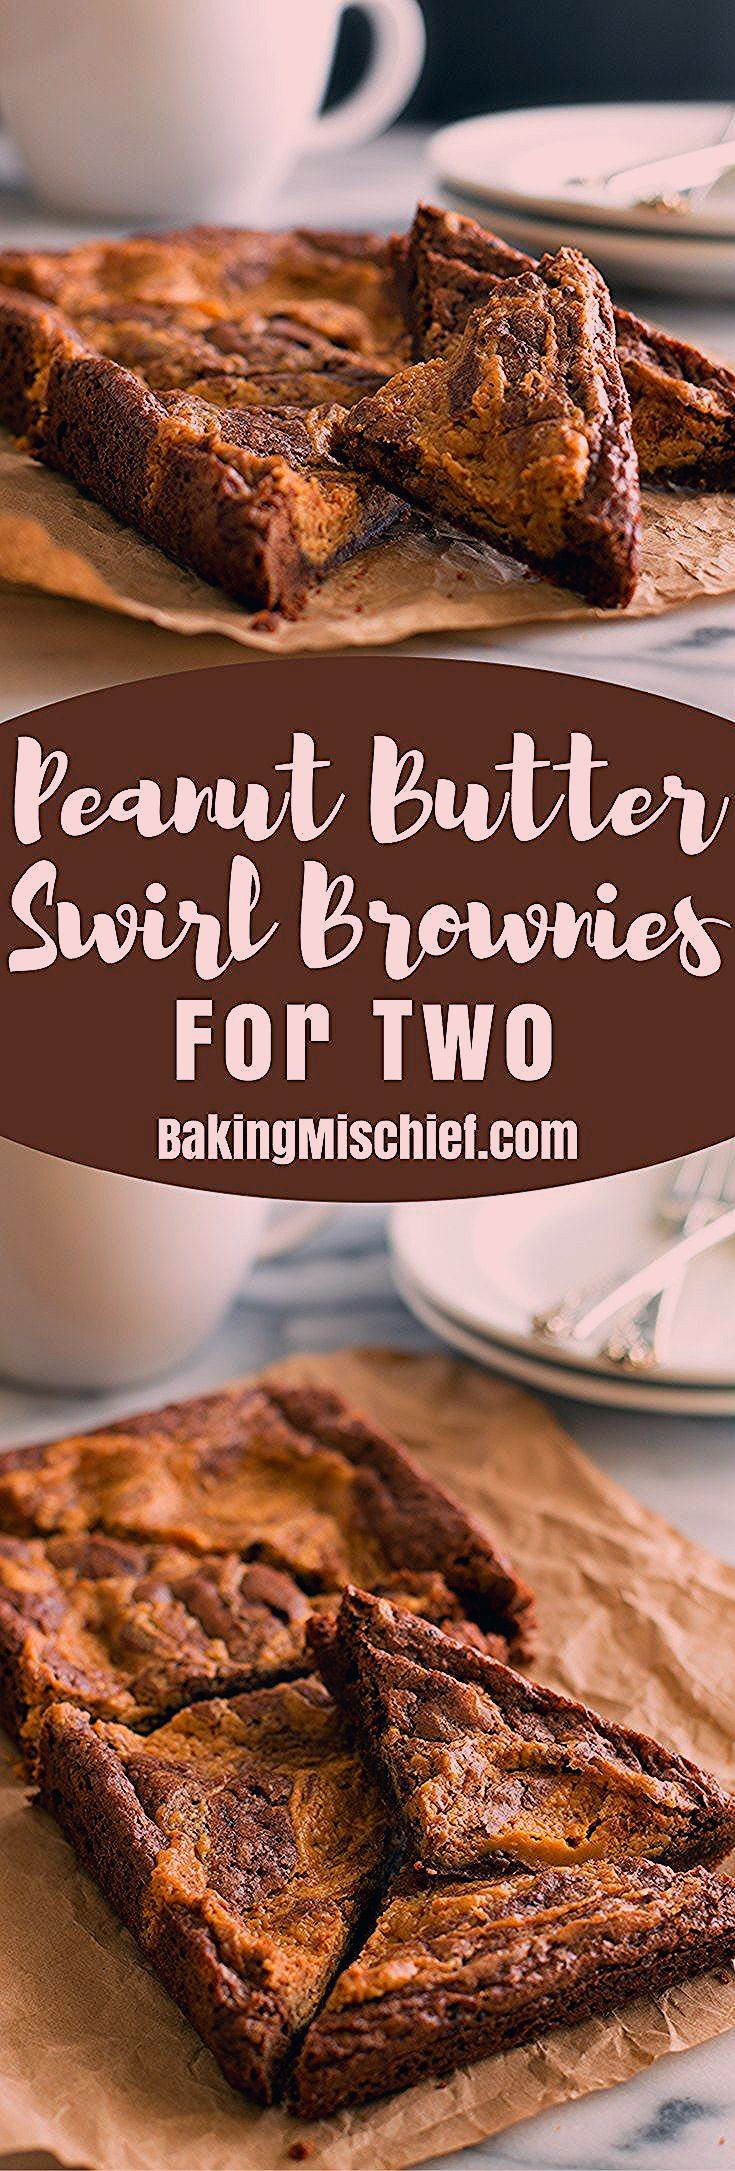 Photo of Peanut Butter Swirl Brownies for Two